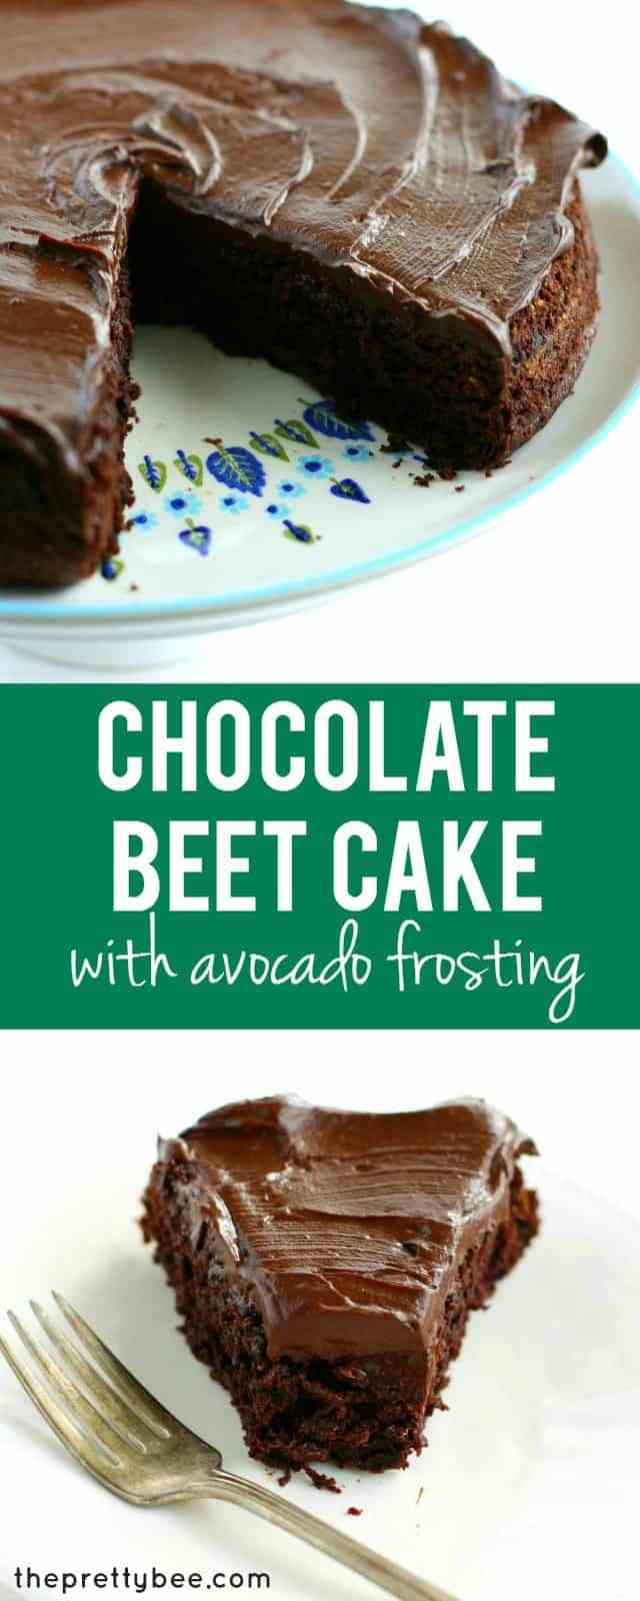 Moist chocolate beet cake recipe